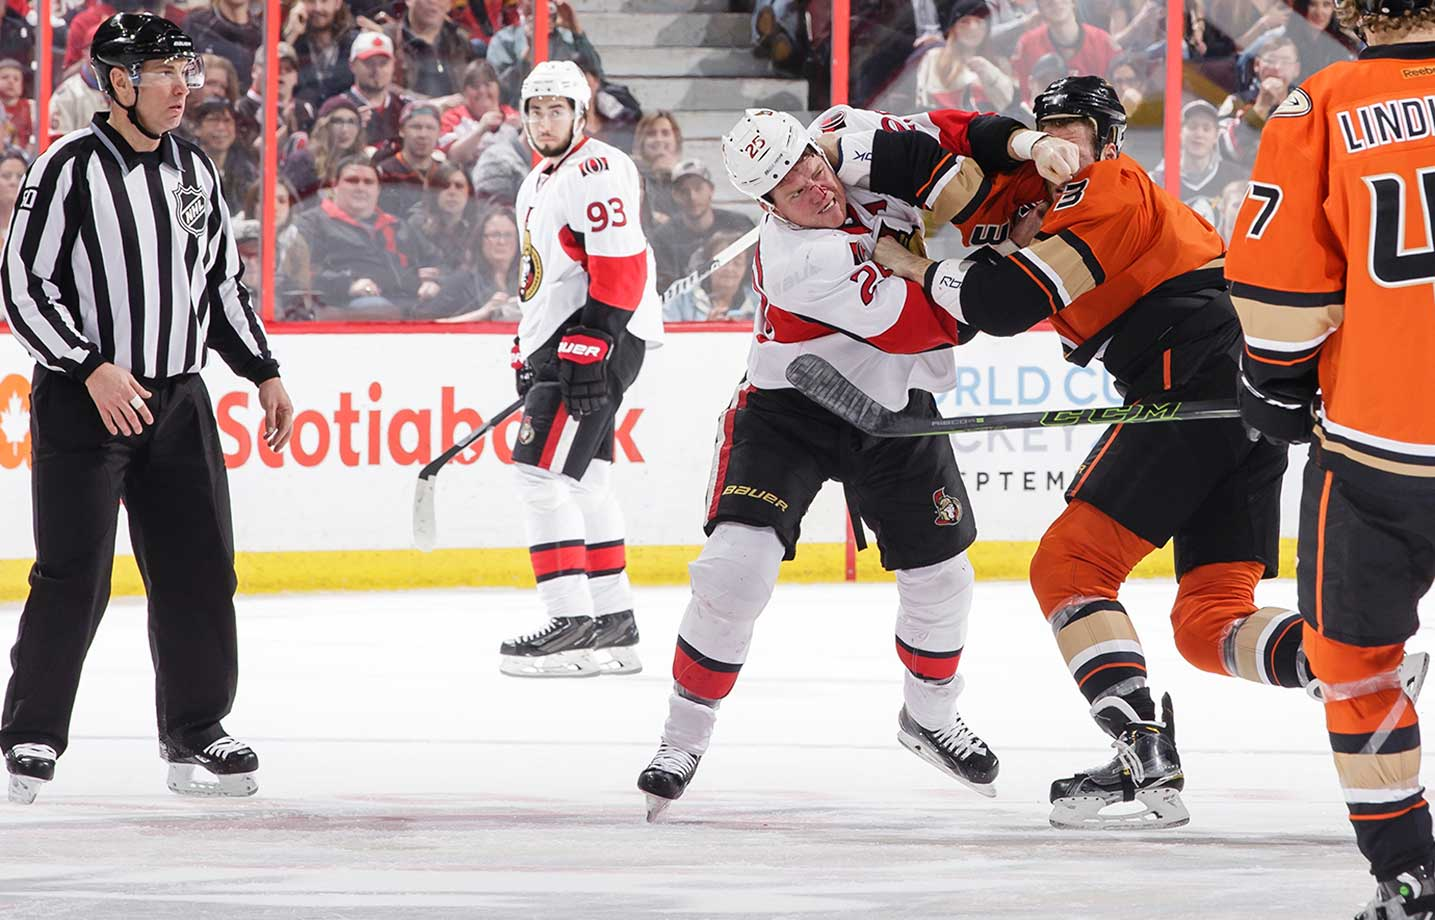 Chris Neil of the Ottawa Senators throws punches against Clayton Stoner of the Anaheim Ducks.